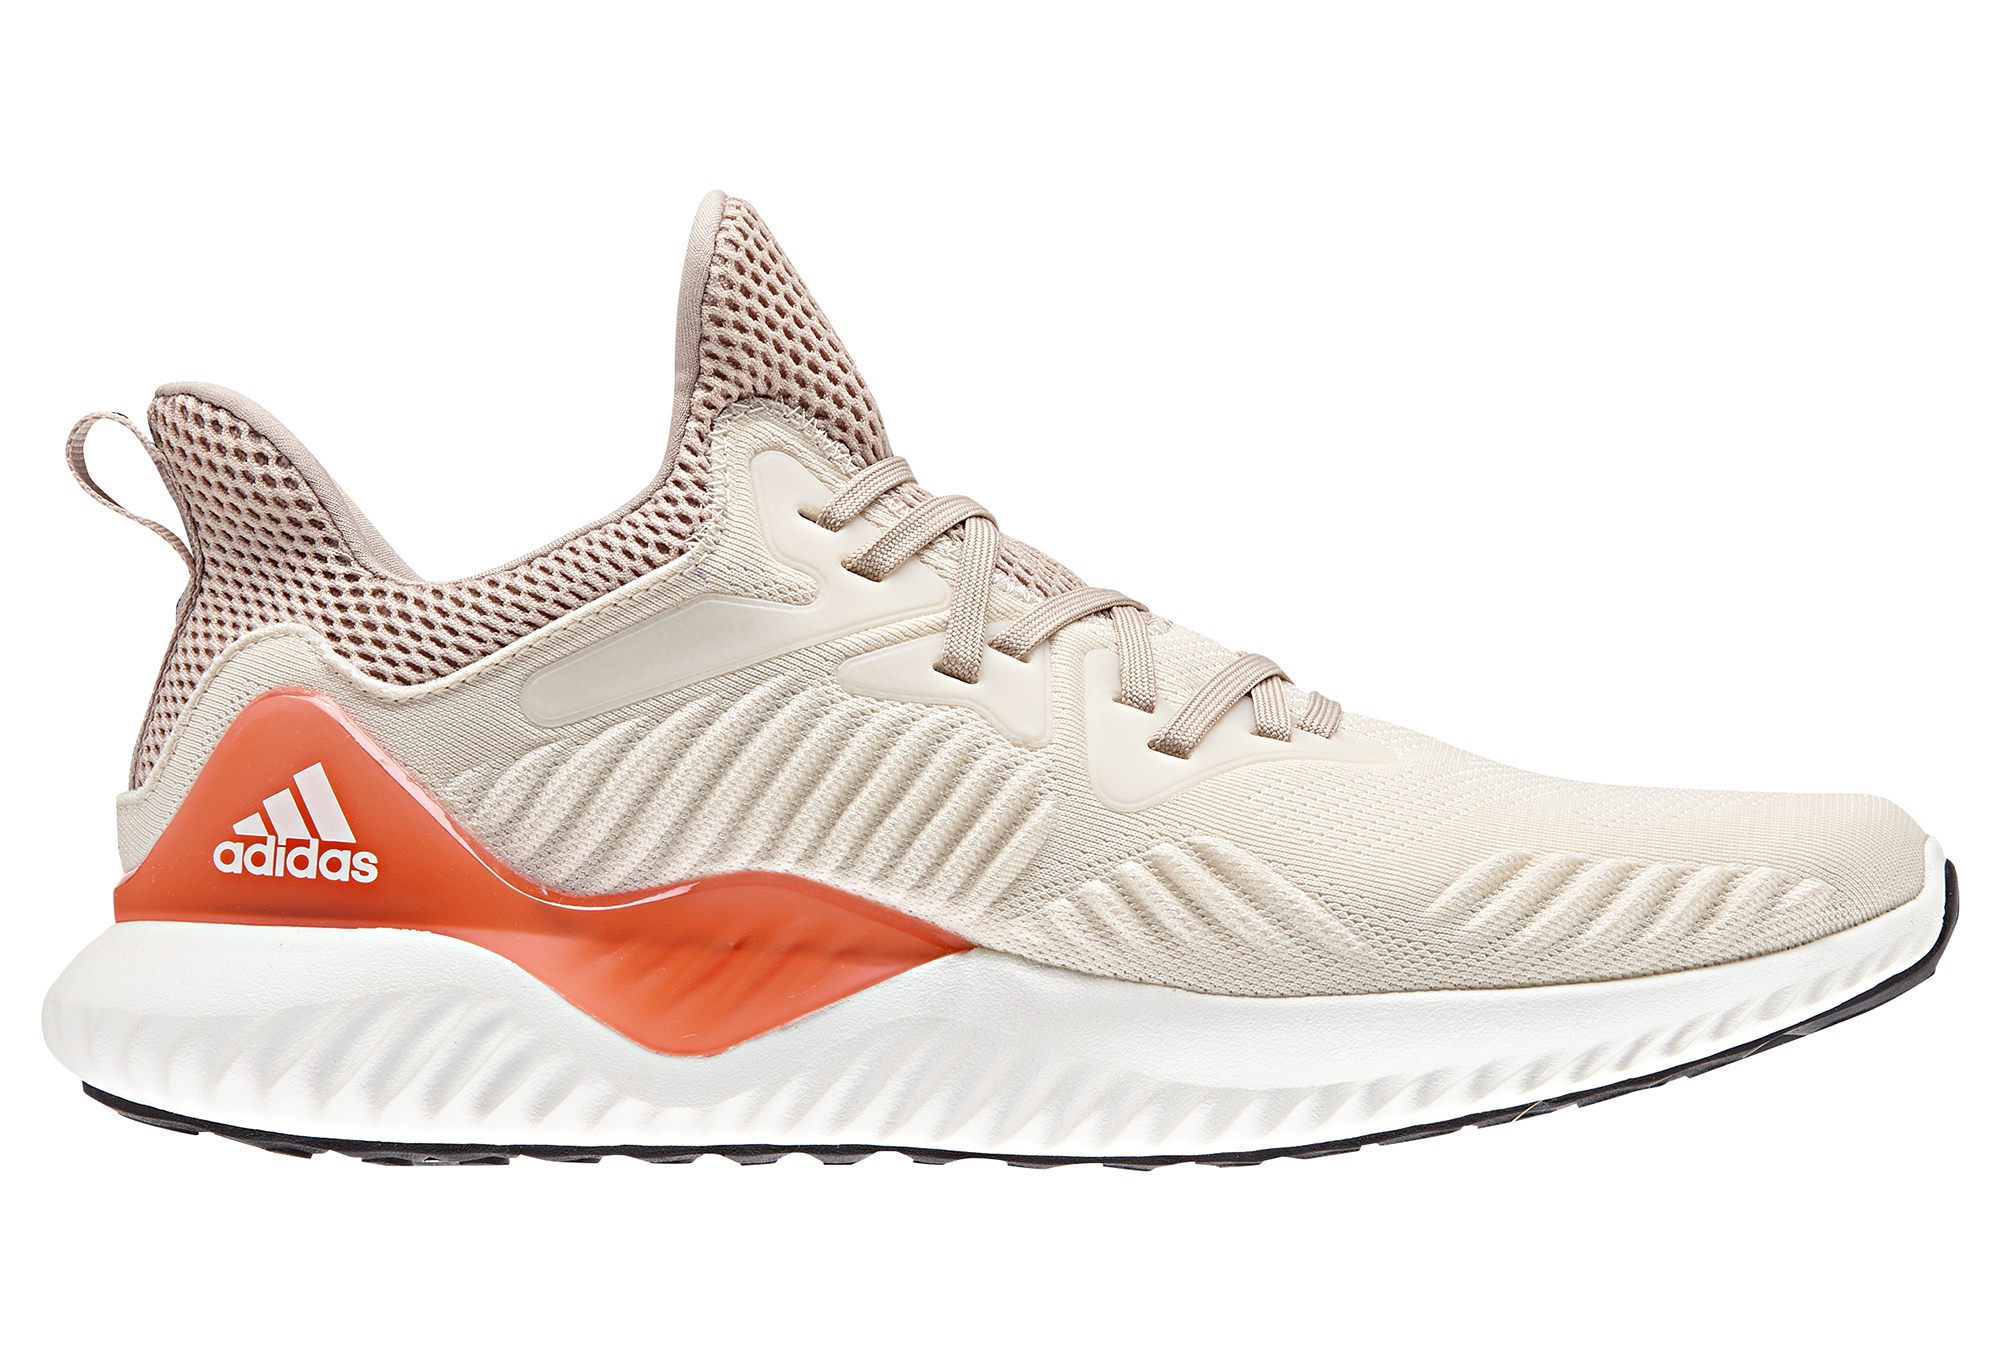 3e69dadcc adidas running alphabounce beyond Beige Orange